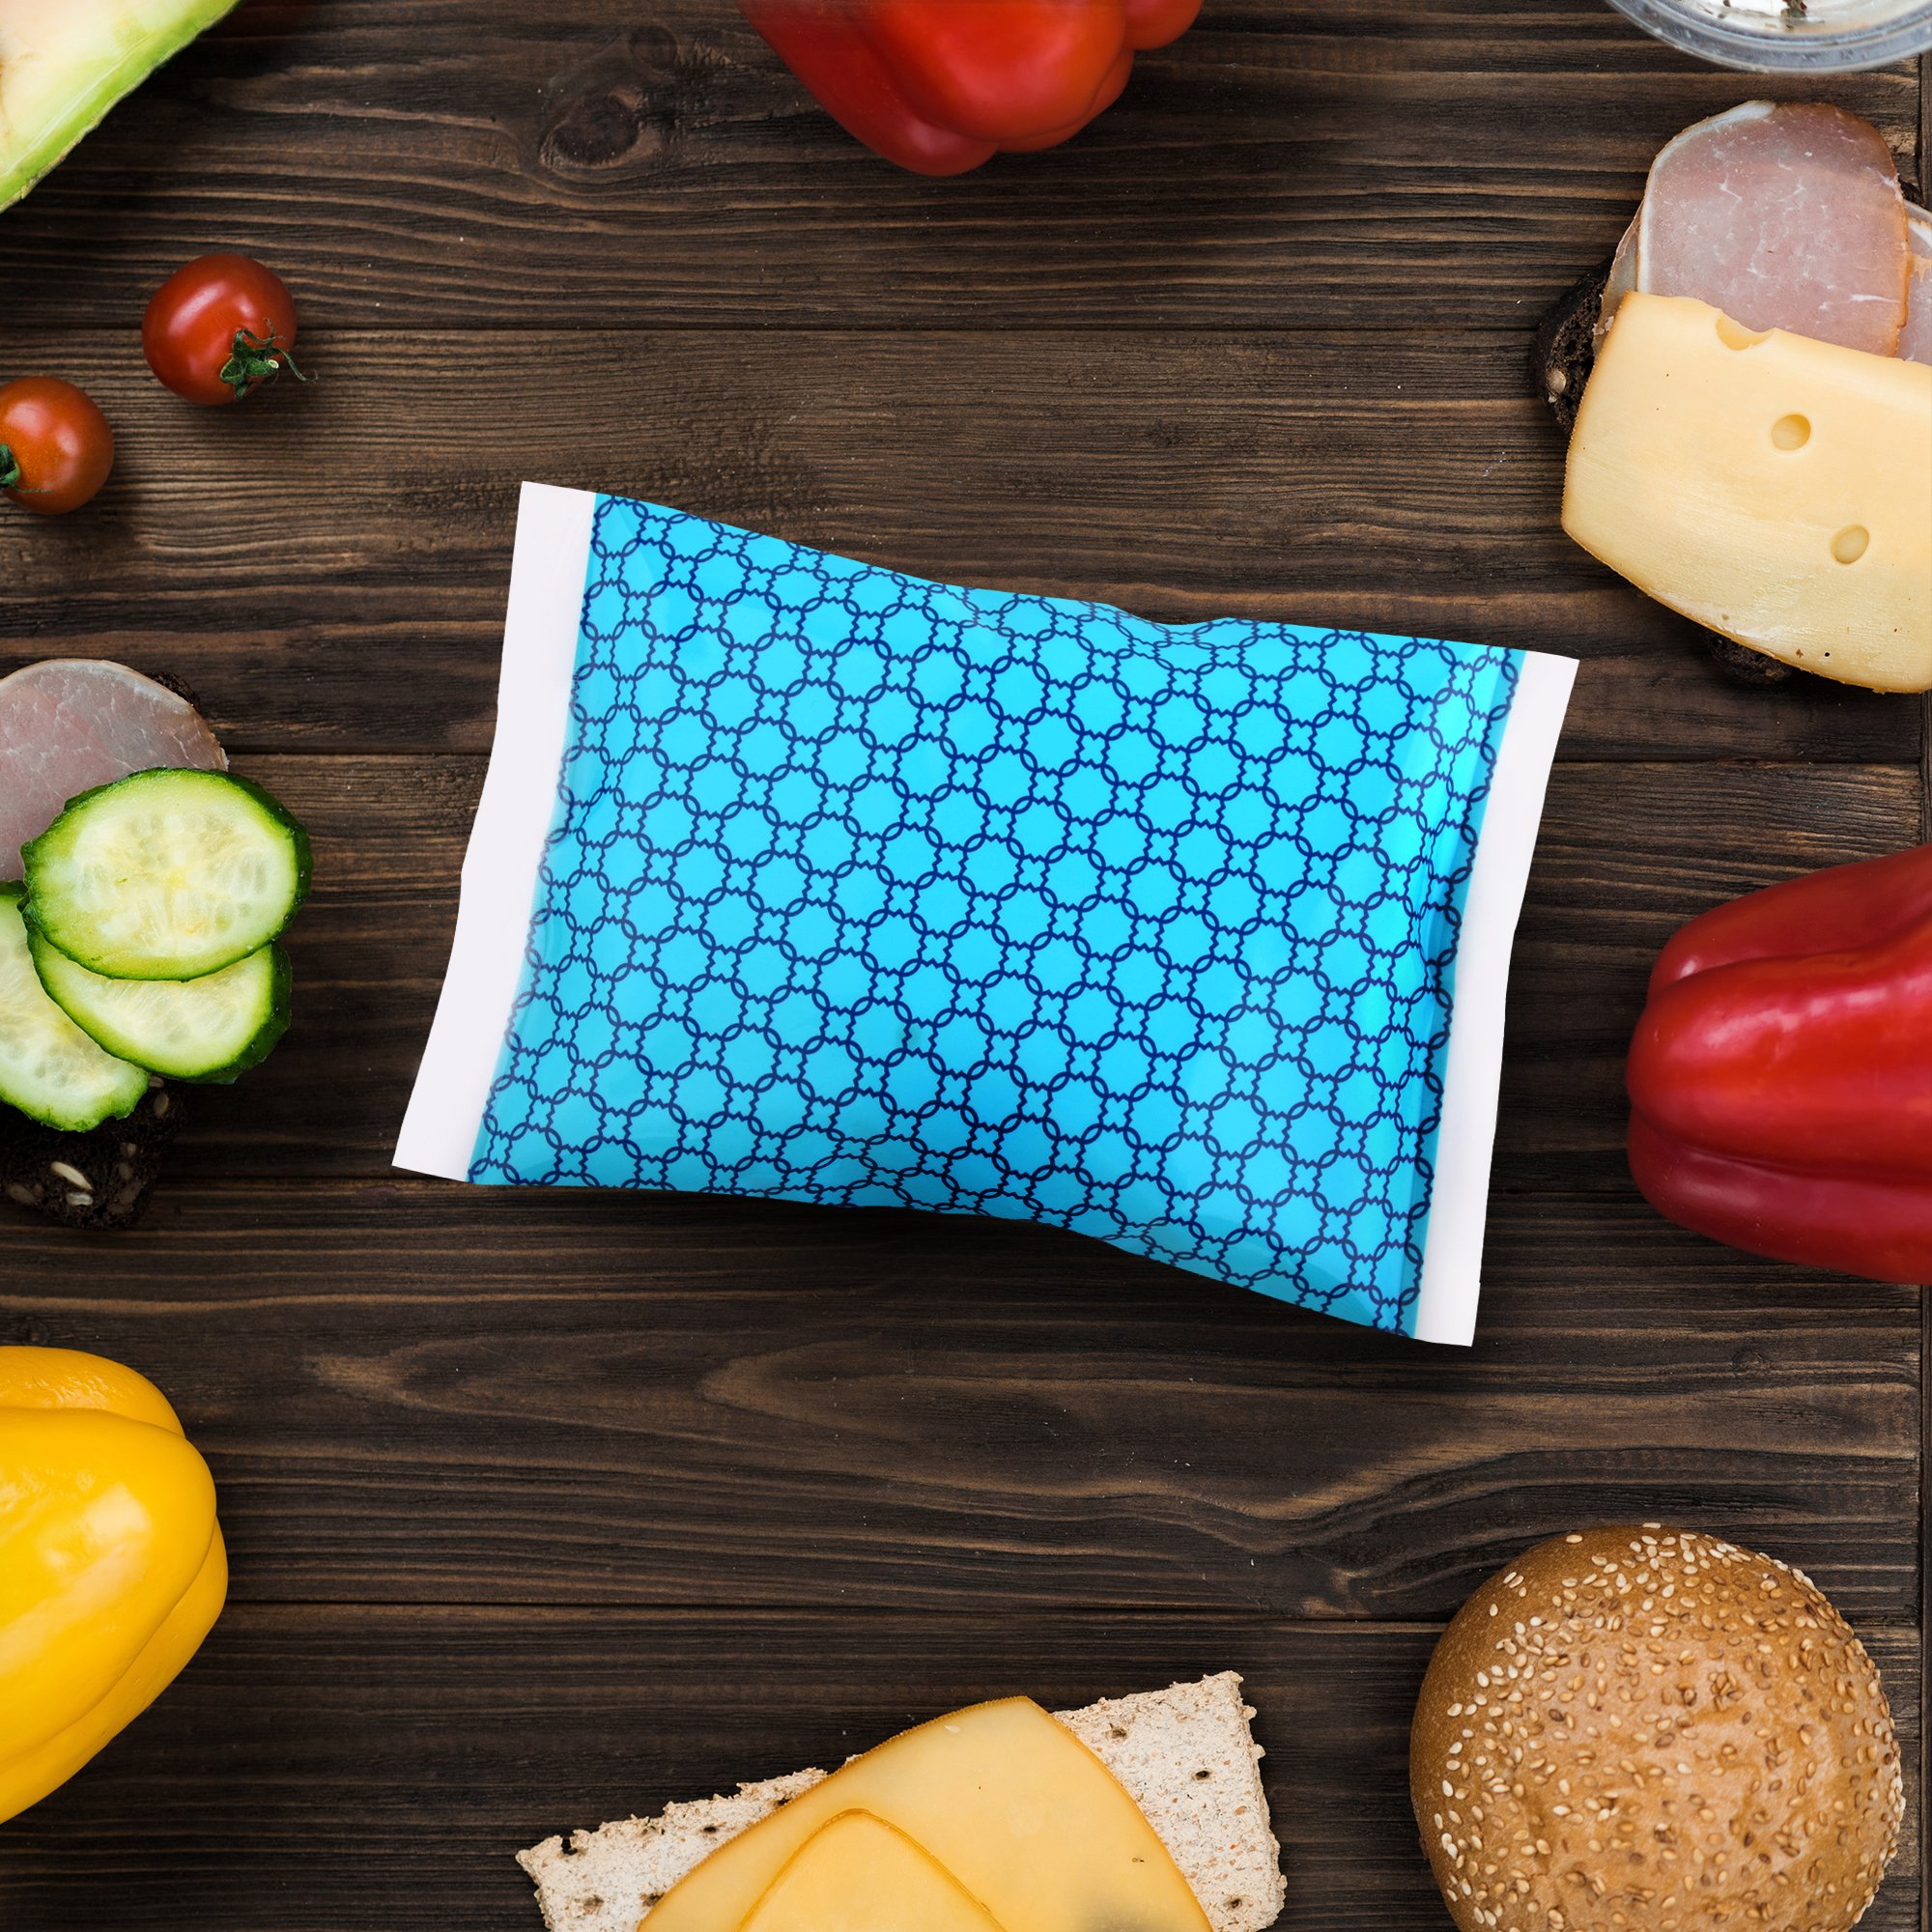 Ice Pack for Lunch Boxes - 4 Reusable Packs - Keeps Food Cold – Cool Print Bag Designs - Great for Kids or Adults Lunchbox and Cooler by Thrive (Image #7)